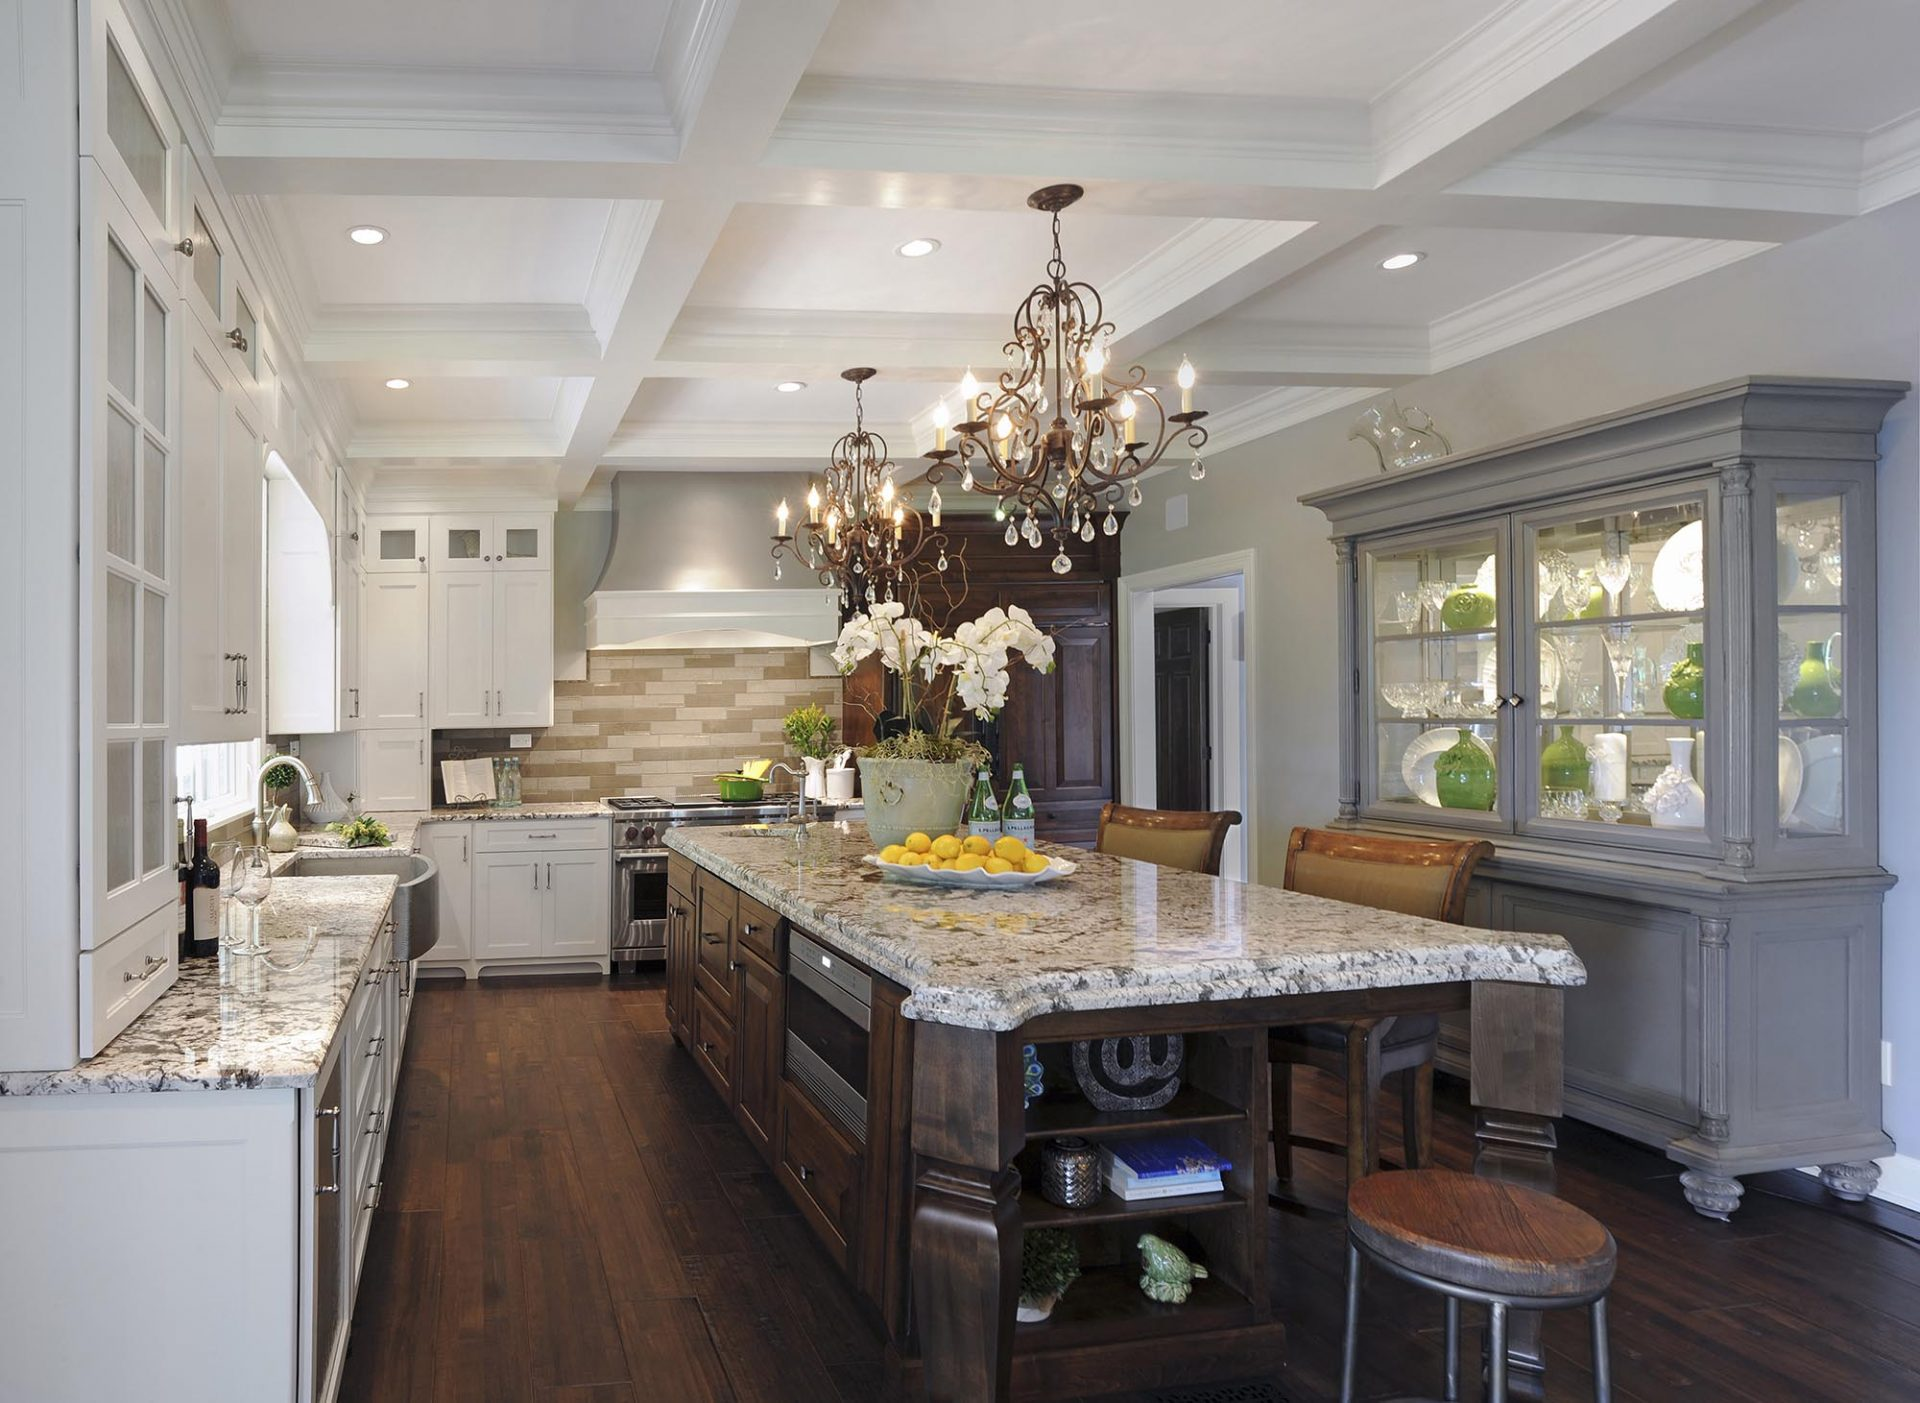 Kitchen renovation, Westerville, Dave Fox, Remodel, storage, oversized island, granite, white cabinets, chandeliers